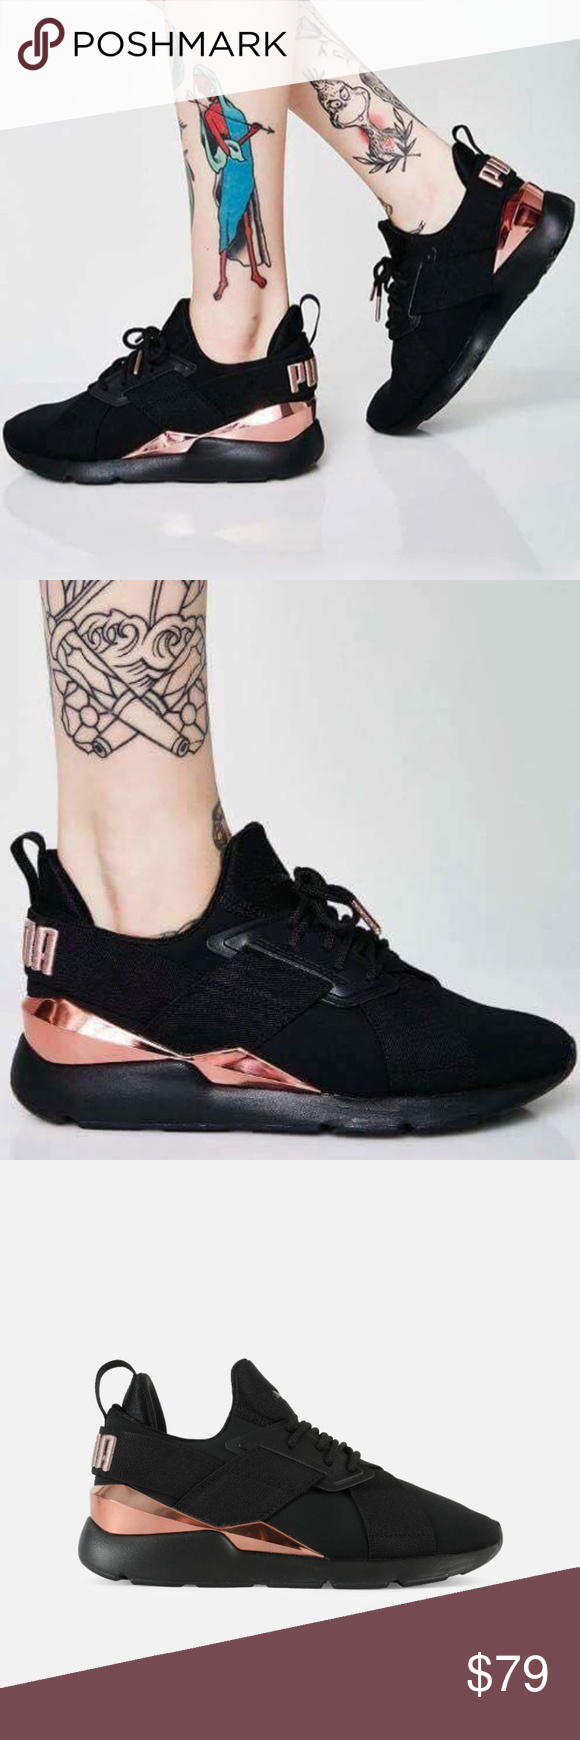 6a37ee643dc PUMA Muse Metal Sneakers NIB! In Black Rose Gold Break loose. The Muse Metal  is taking charge and taking names with a running-inspired